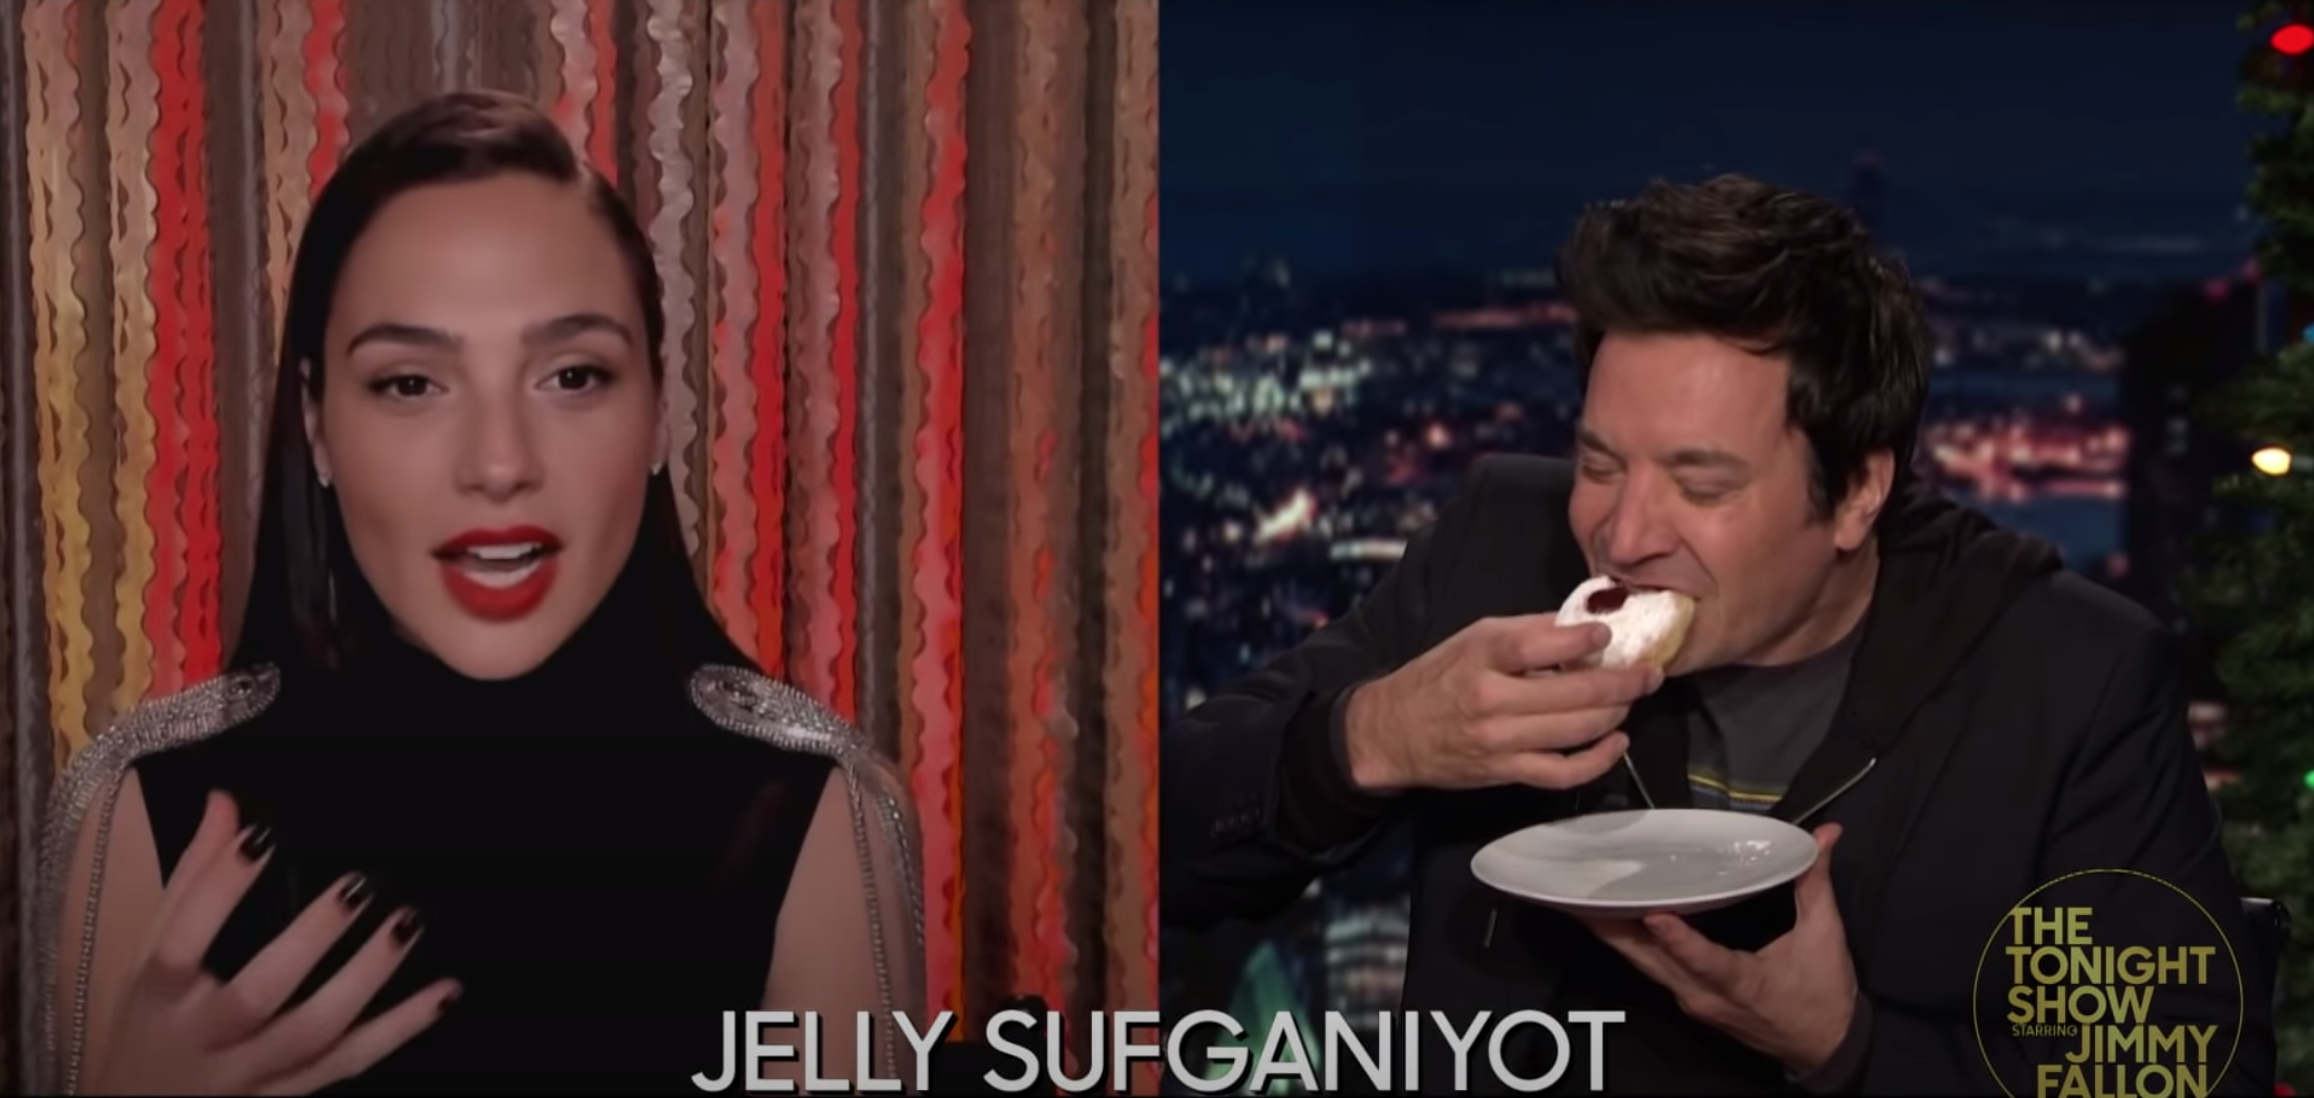 Gal Gadot next to Jimmy Fallon as he eats the jelly sufganiyot